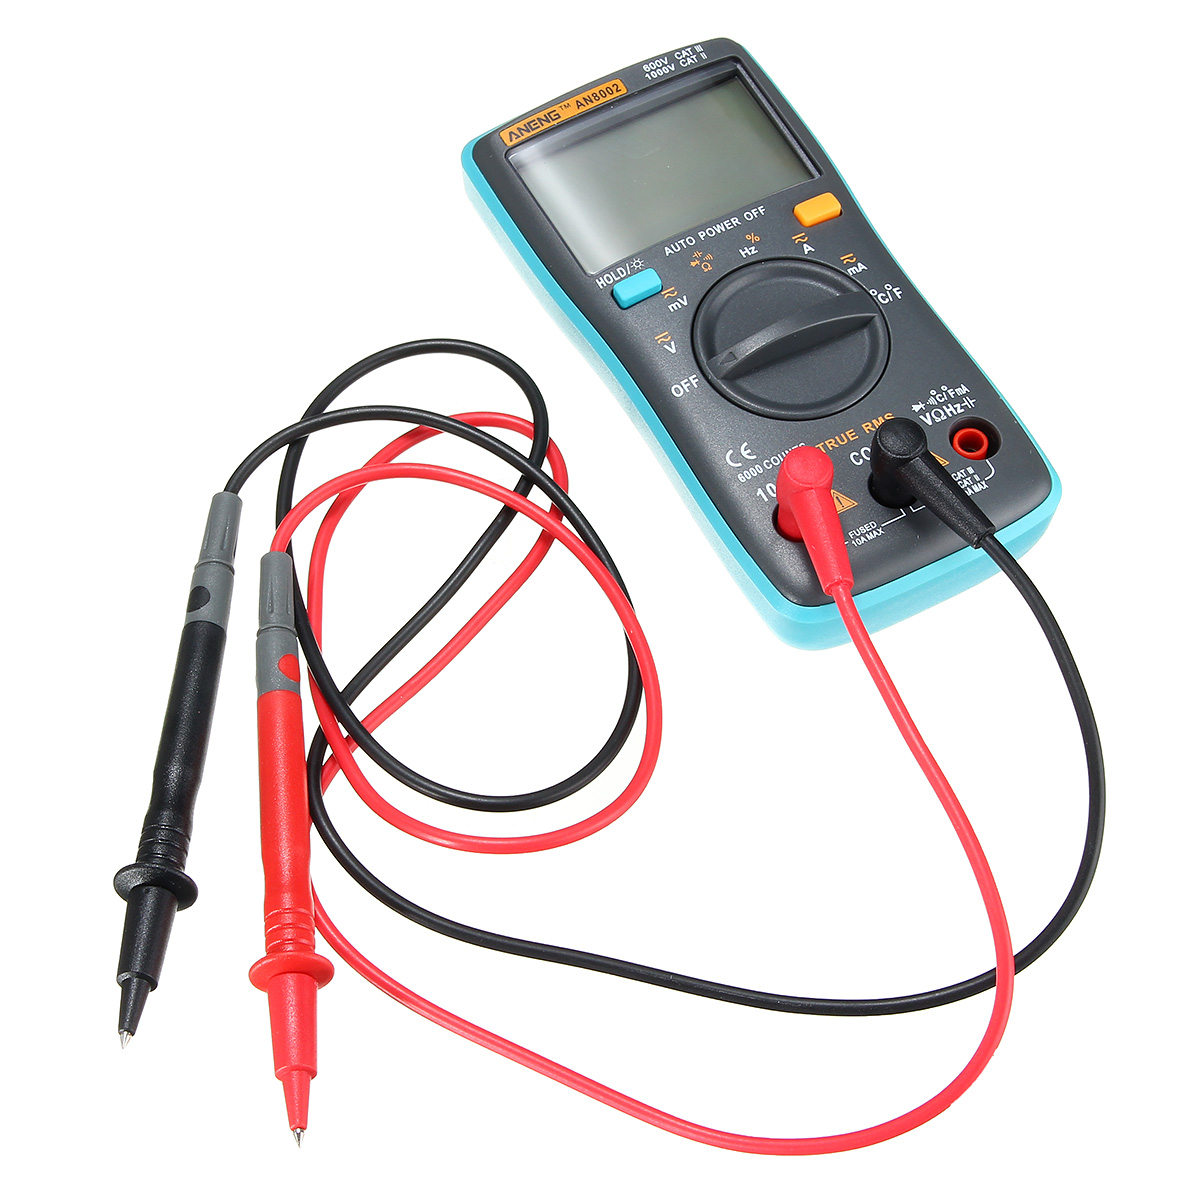 ANENG AN8002 Digital Ture RMS 6000 Counts Multimeter AC/DC Current Voltage Frequency Resistance Temperature Tester ℃/℉ - visiocology.com - new york